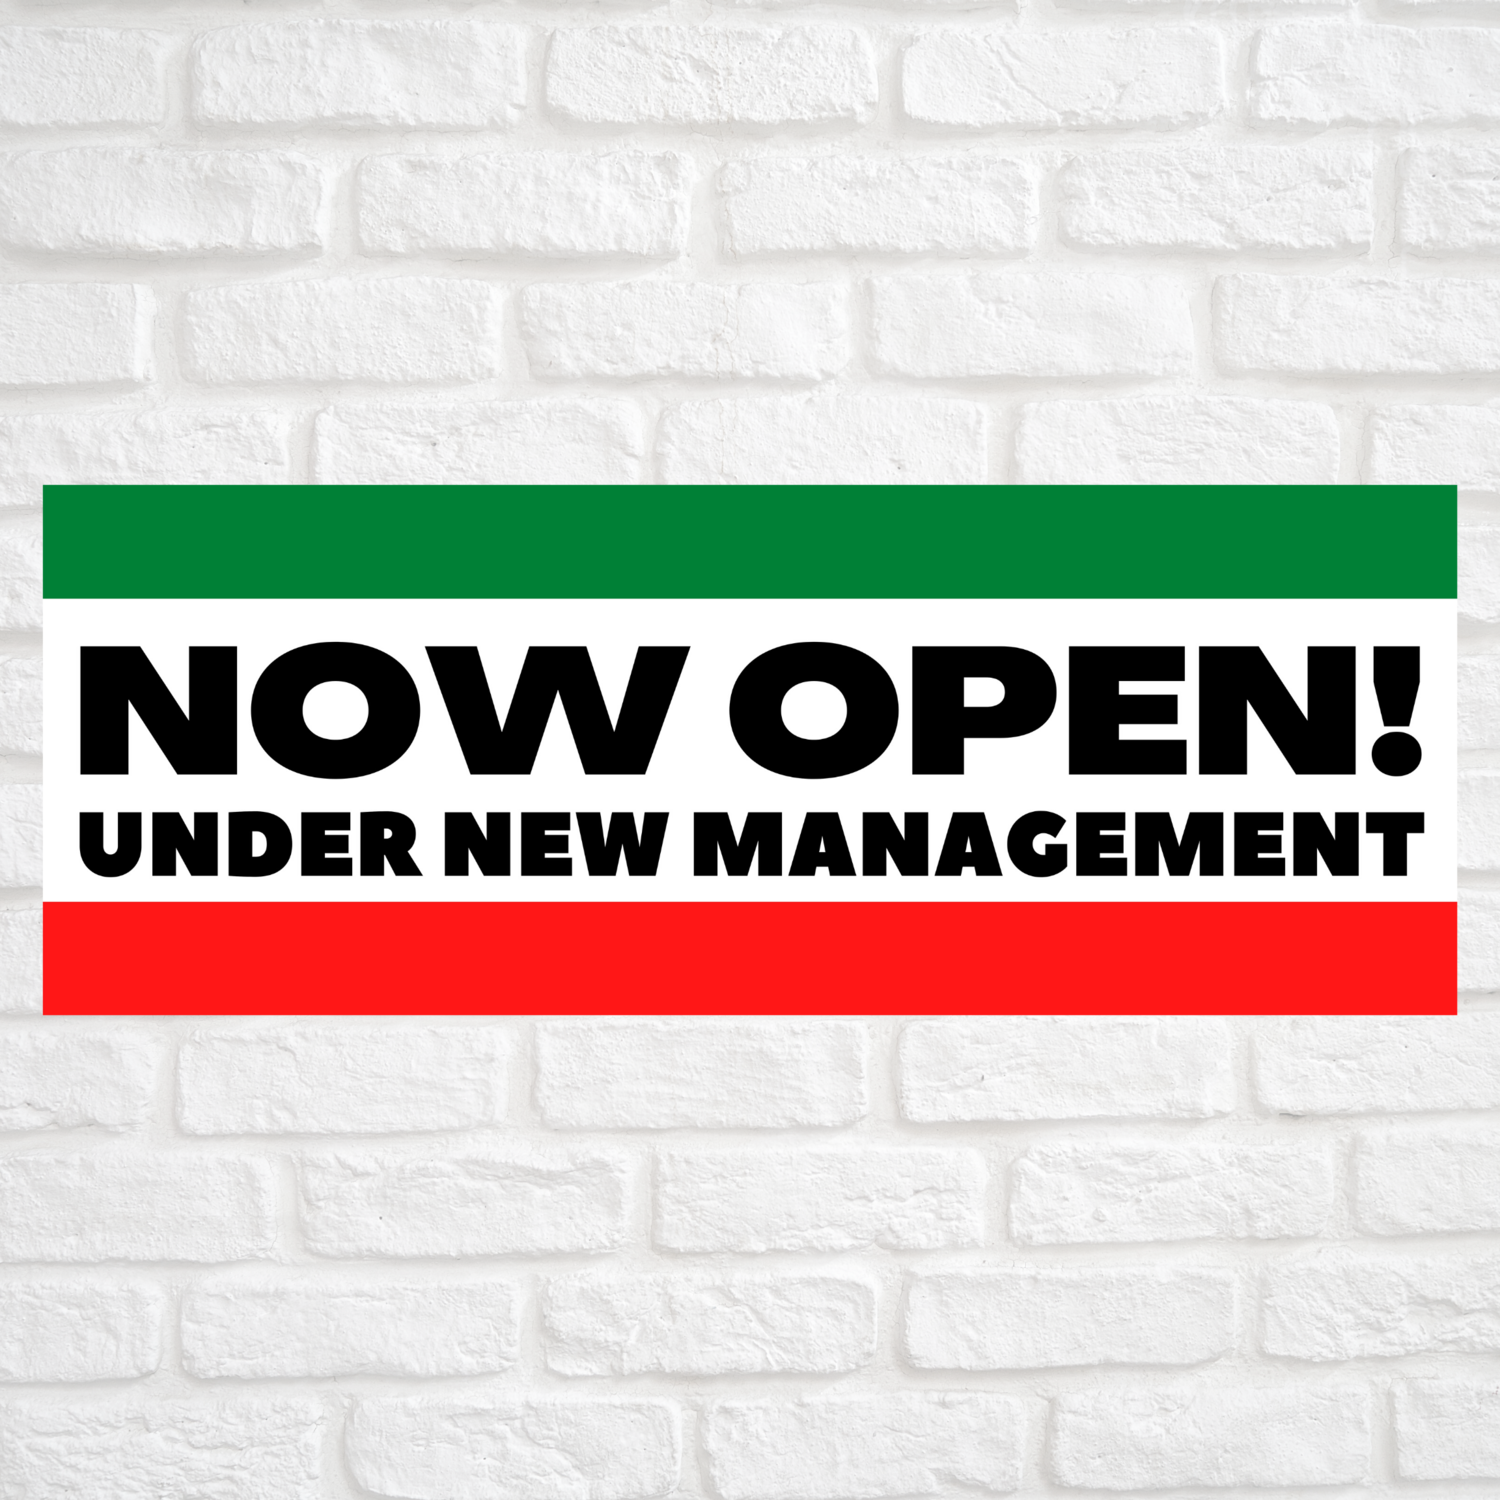 Now Open! Under New Management Green/Red